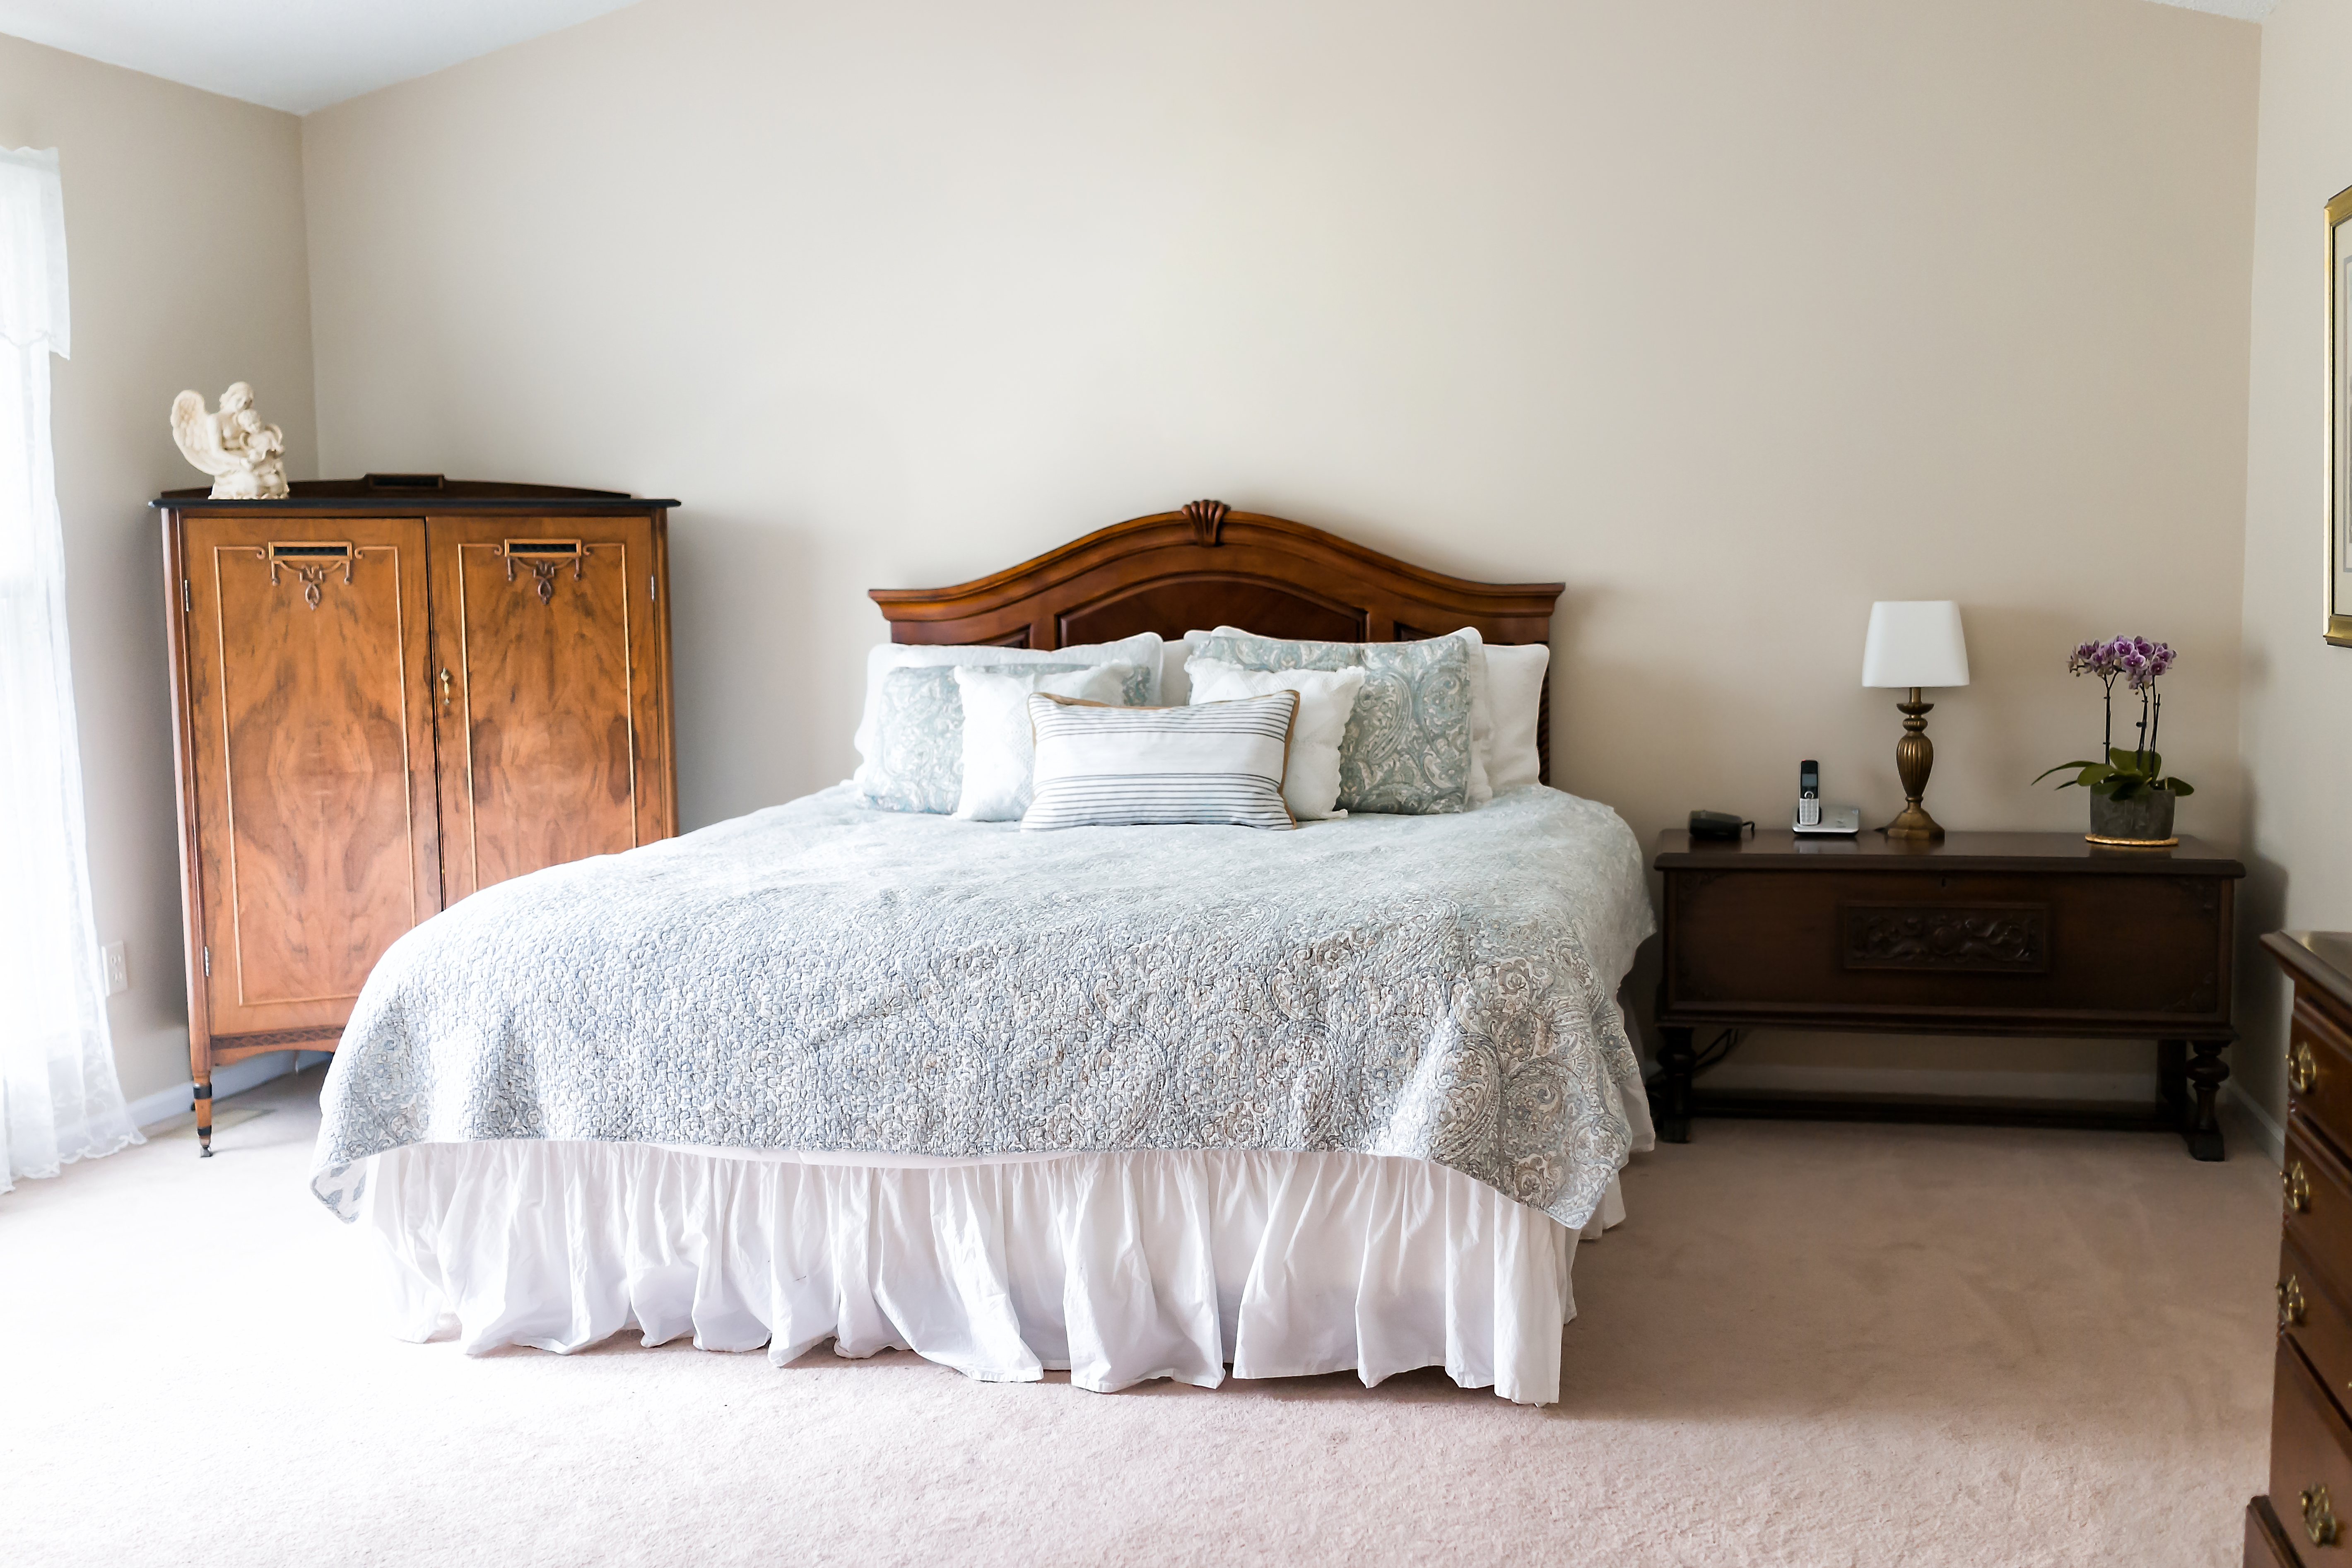 How To Clean And Sanitize A King Comforter At Home Home Guides